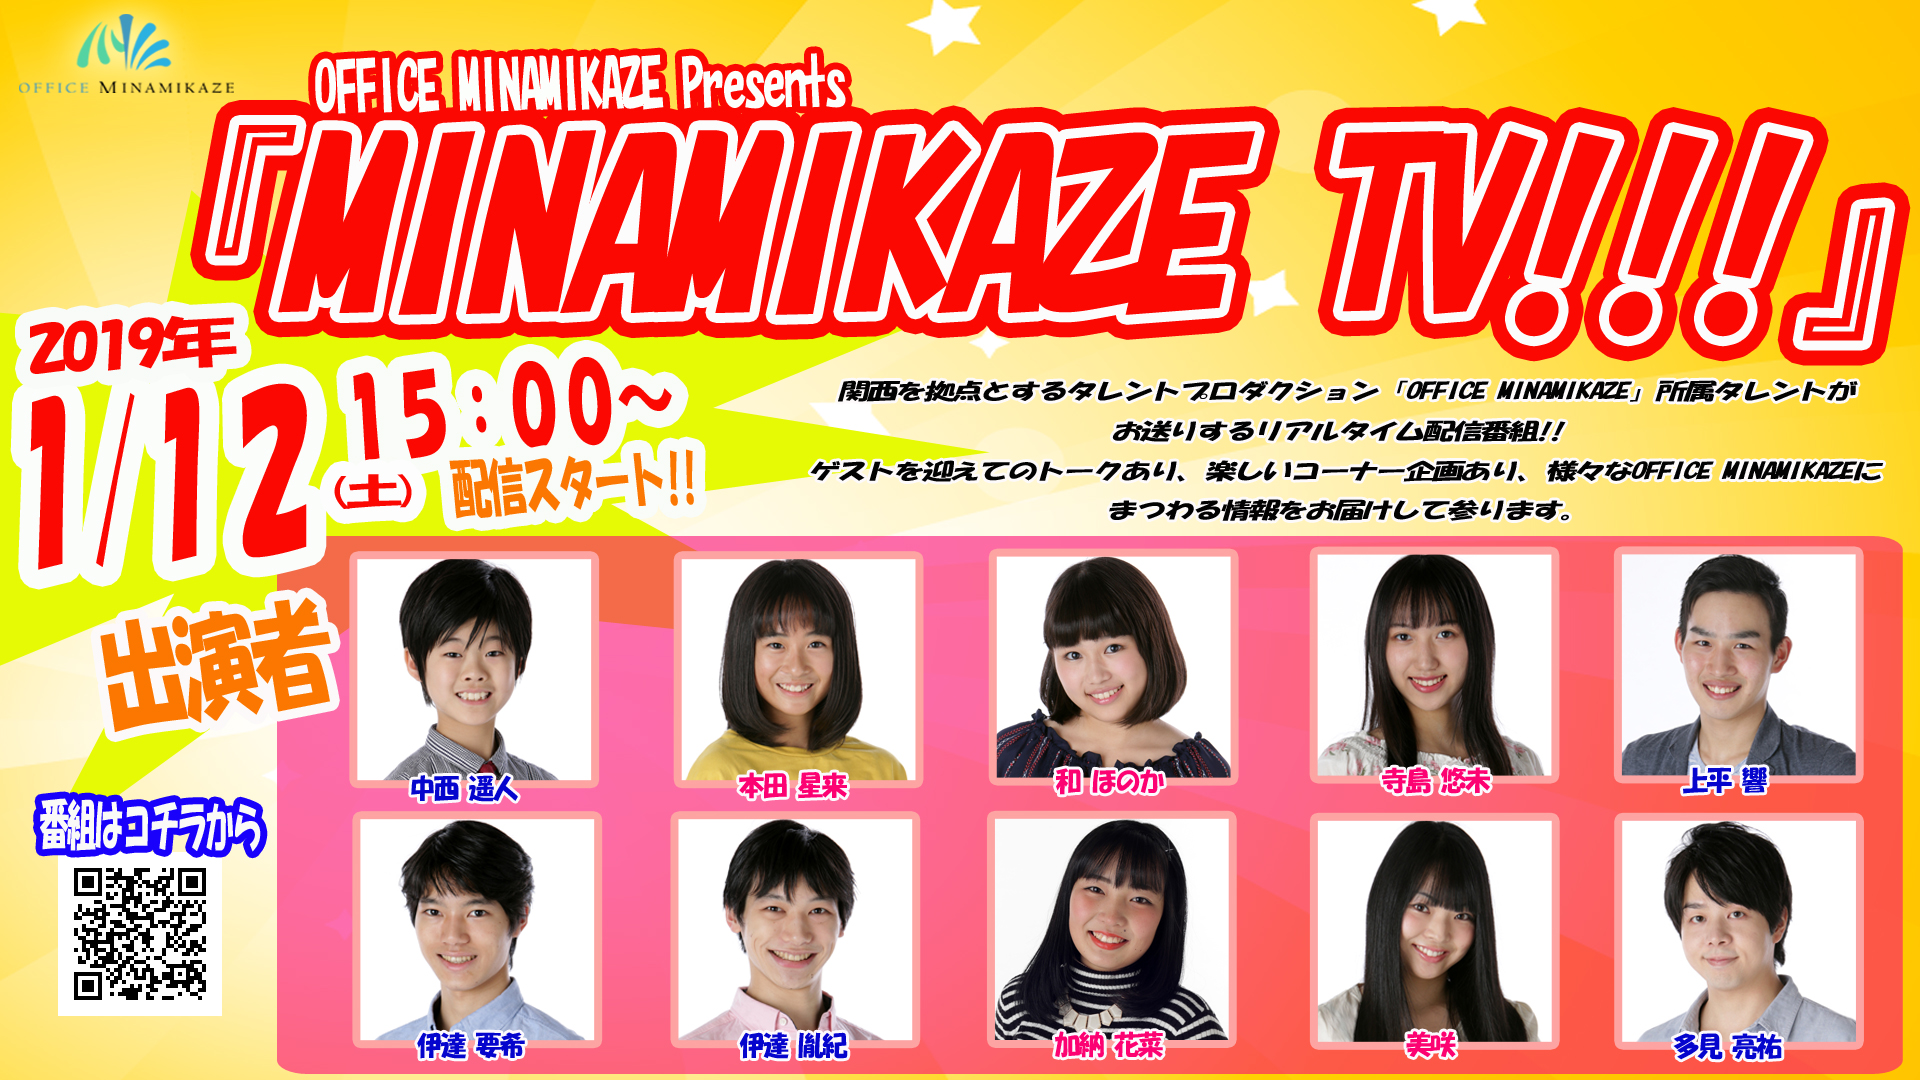 【出演情報】2019年1月12日(土)OFFICE MINAMIKAZE Presents by FRESH!「MINAMIKAZE TV!!!」